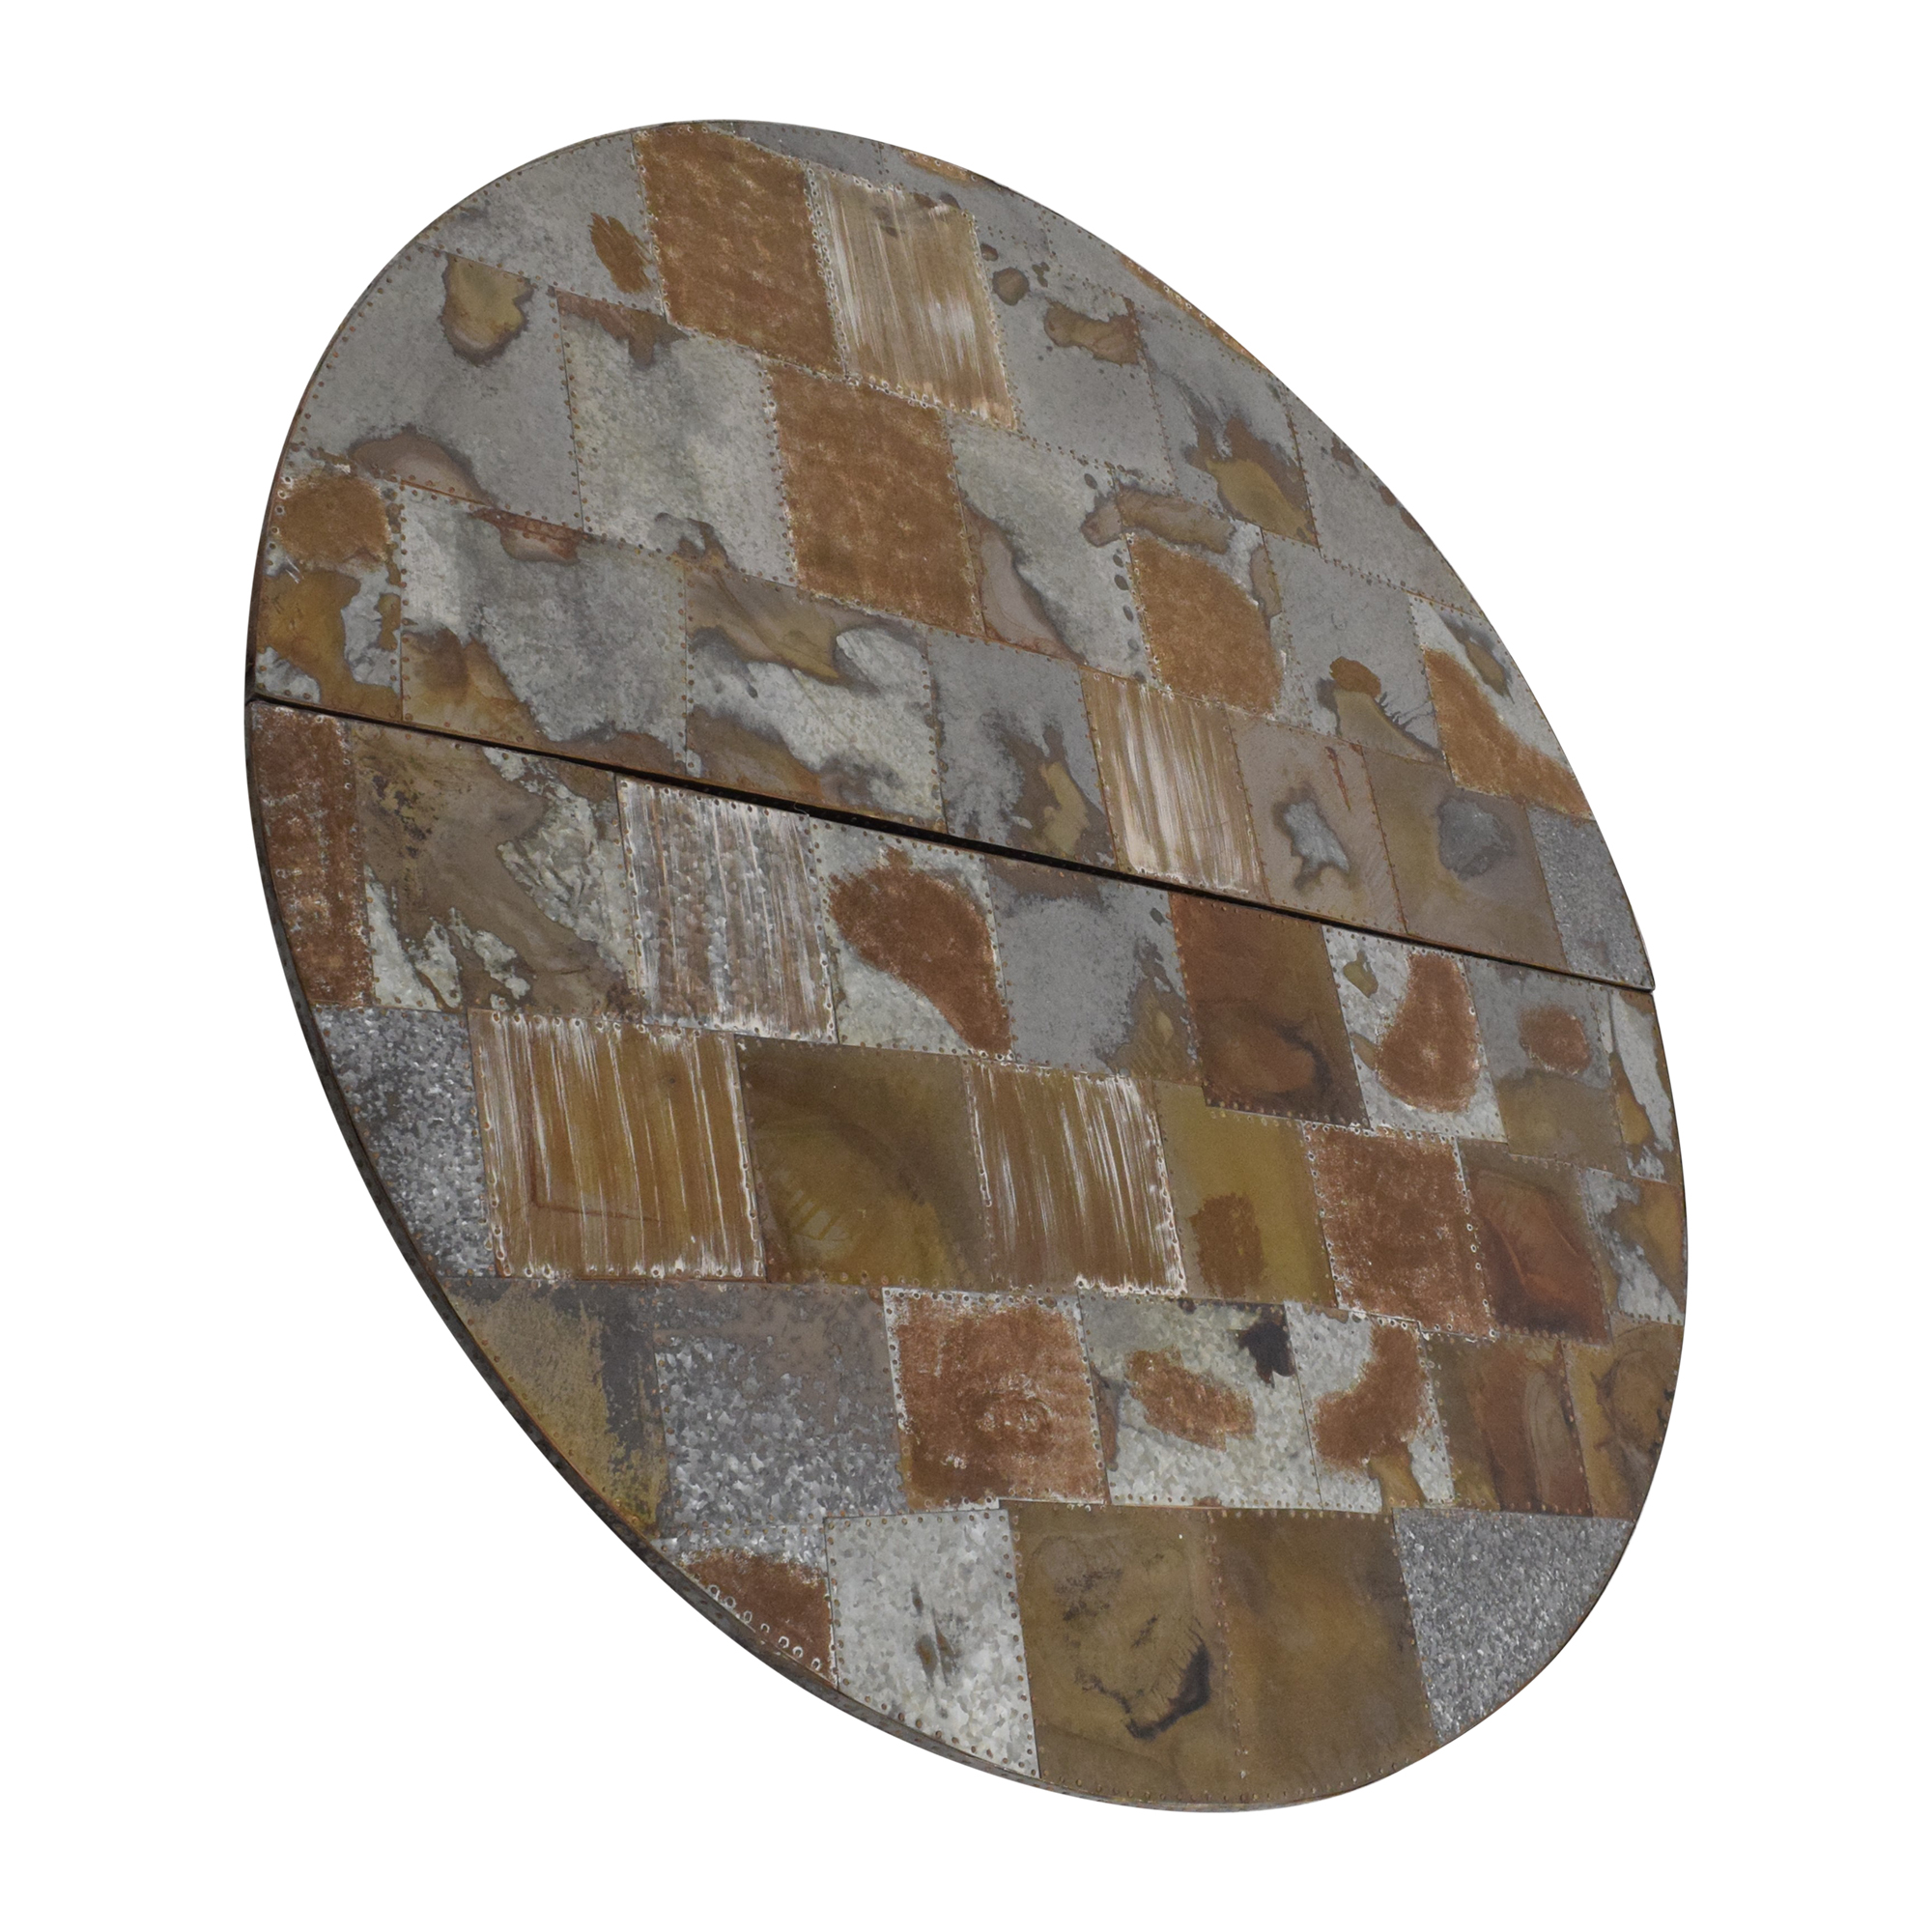 buy Pottery Barn Pottery Barn Galvanized Metal Patchwork Art online